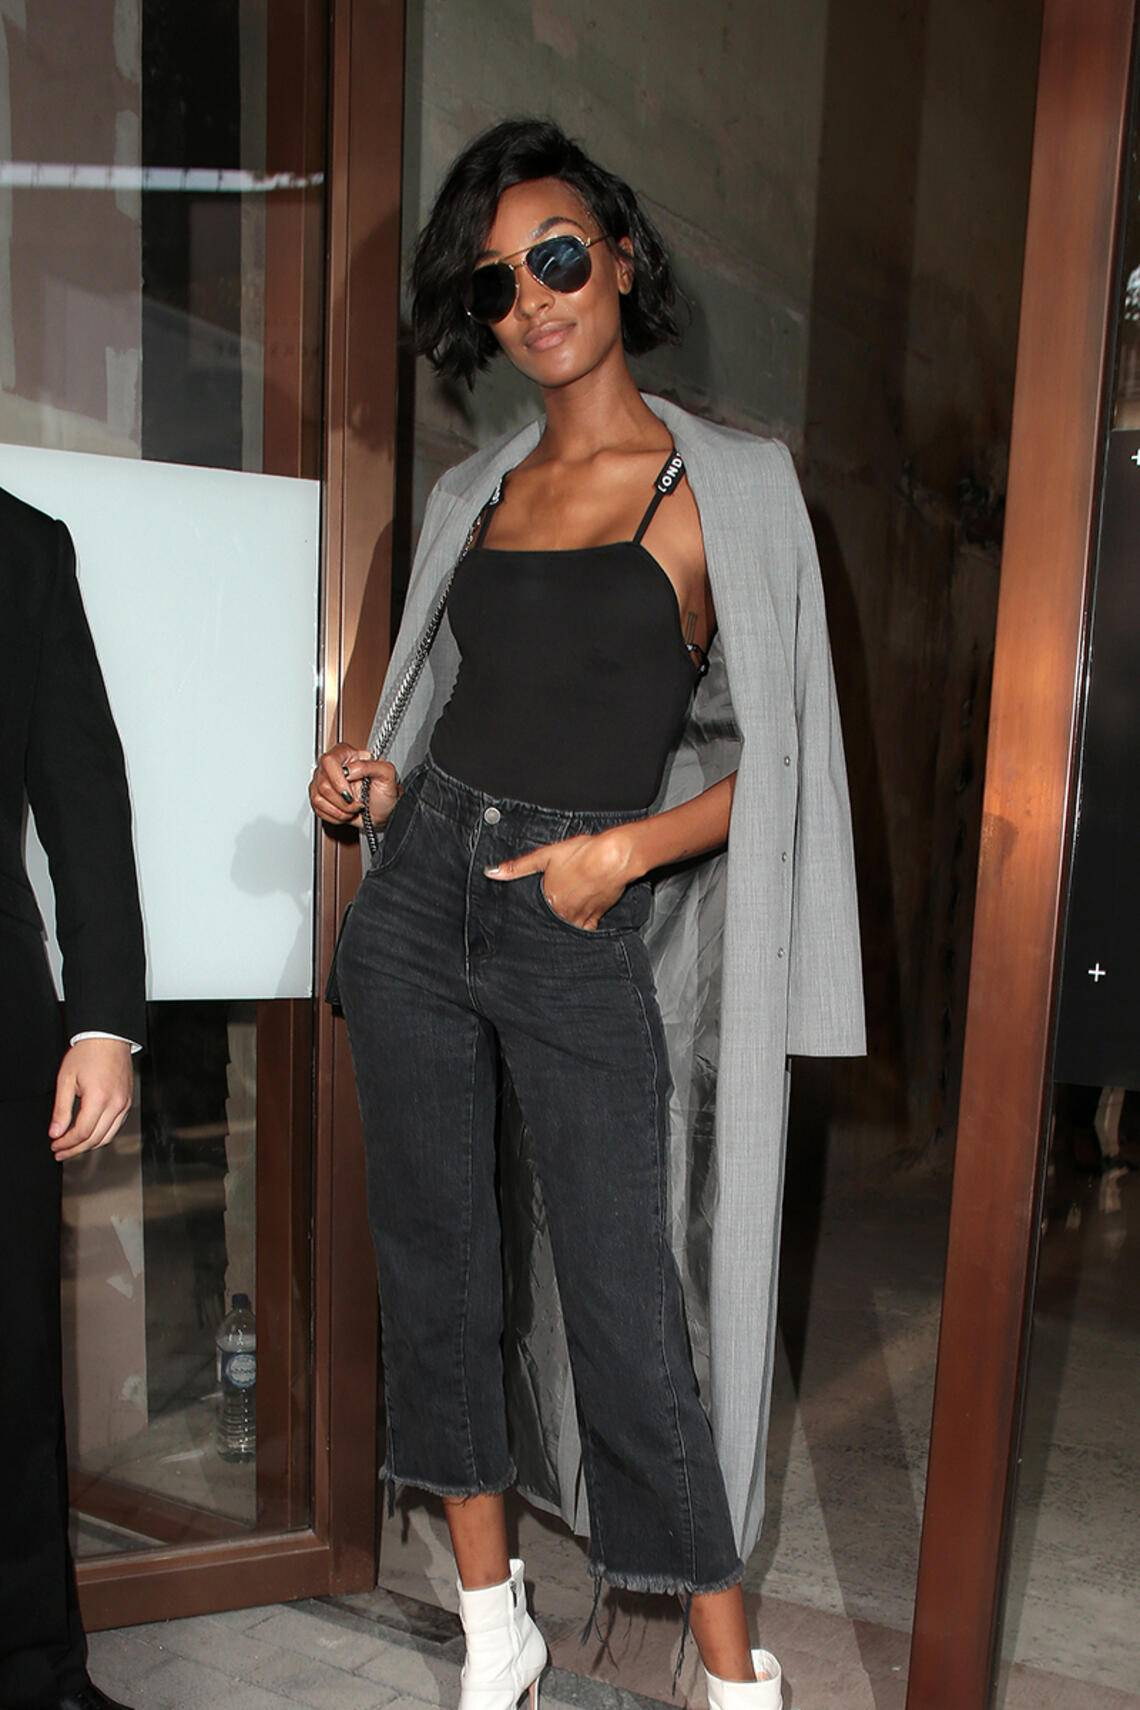 Jourdan Dunn in Jeans und Dustercoat unterwegs in London